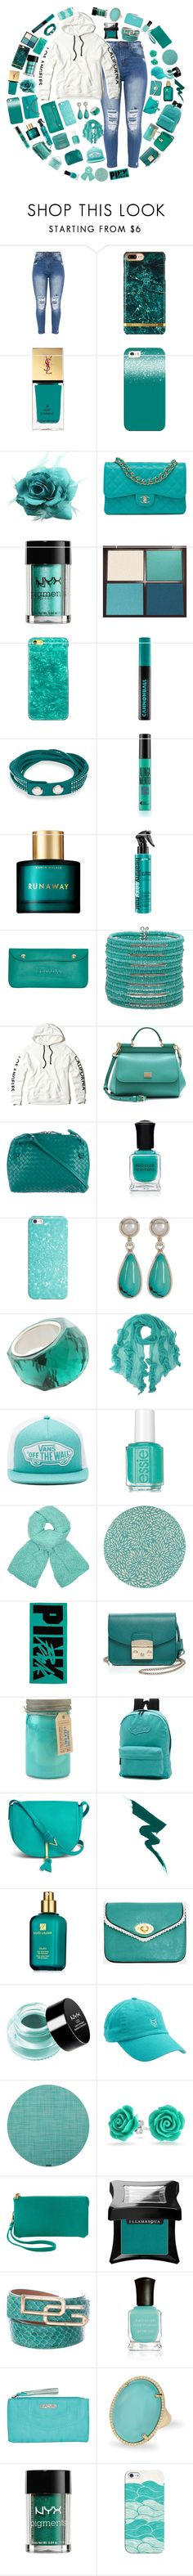 """""""Untitled #309"""" by isabellefashion23 ❤ liked on Polyvore featuring Yves Saint Laurent, Casetify, Chanel, NYX, Tom Ford, Urban Decay, Swarovski, Karen Walker, ESCADA and Mixit"""